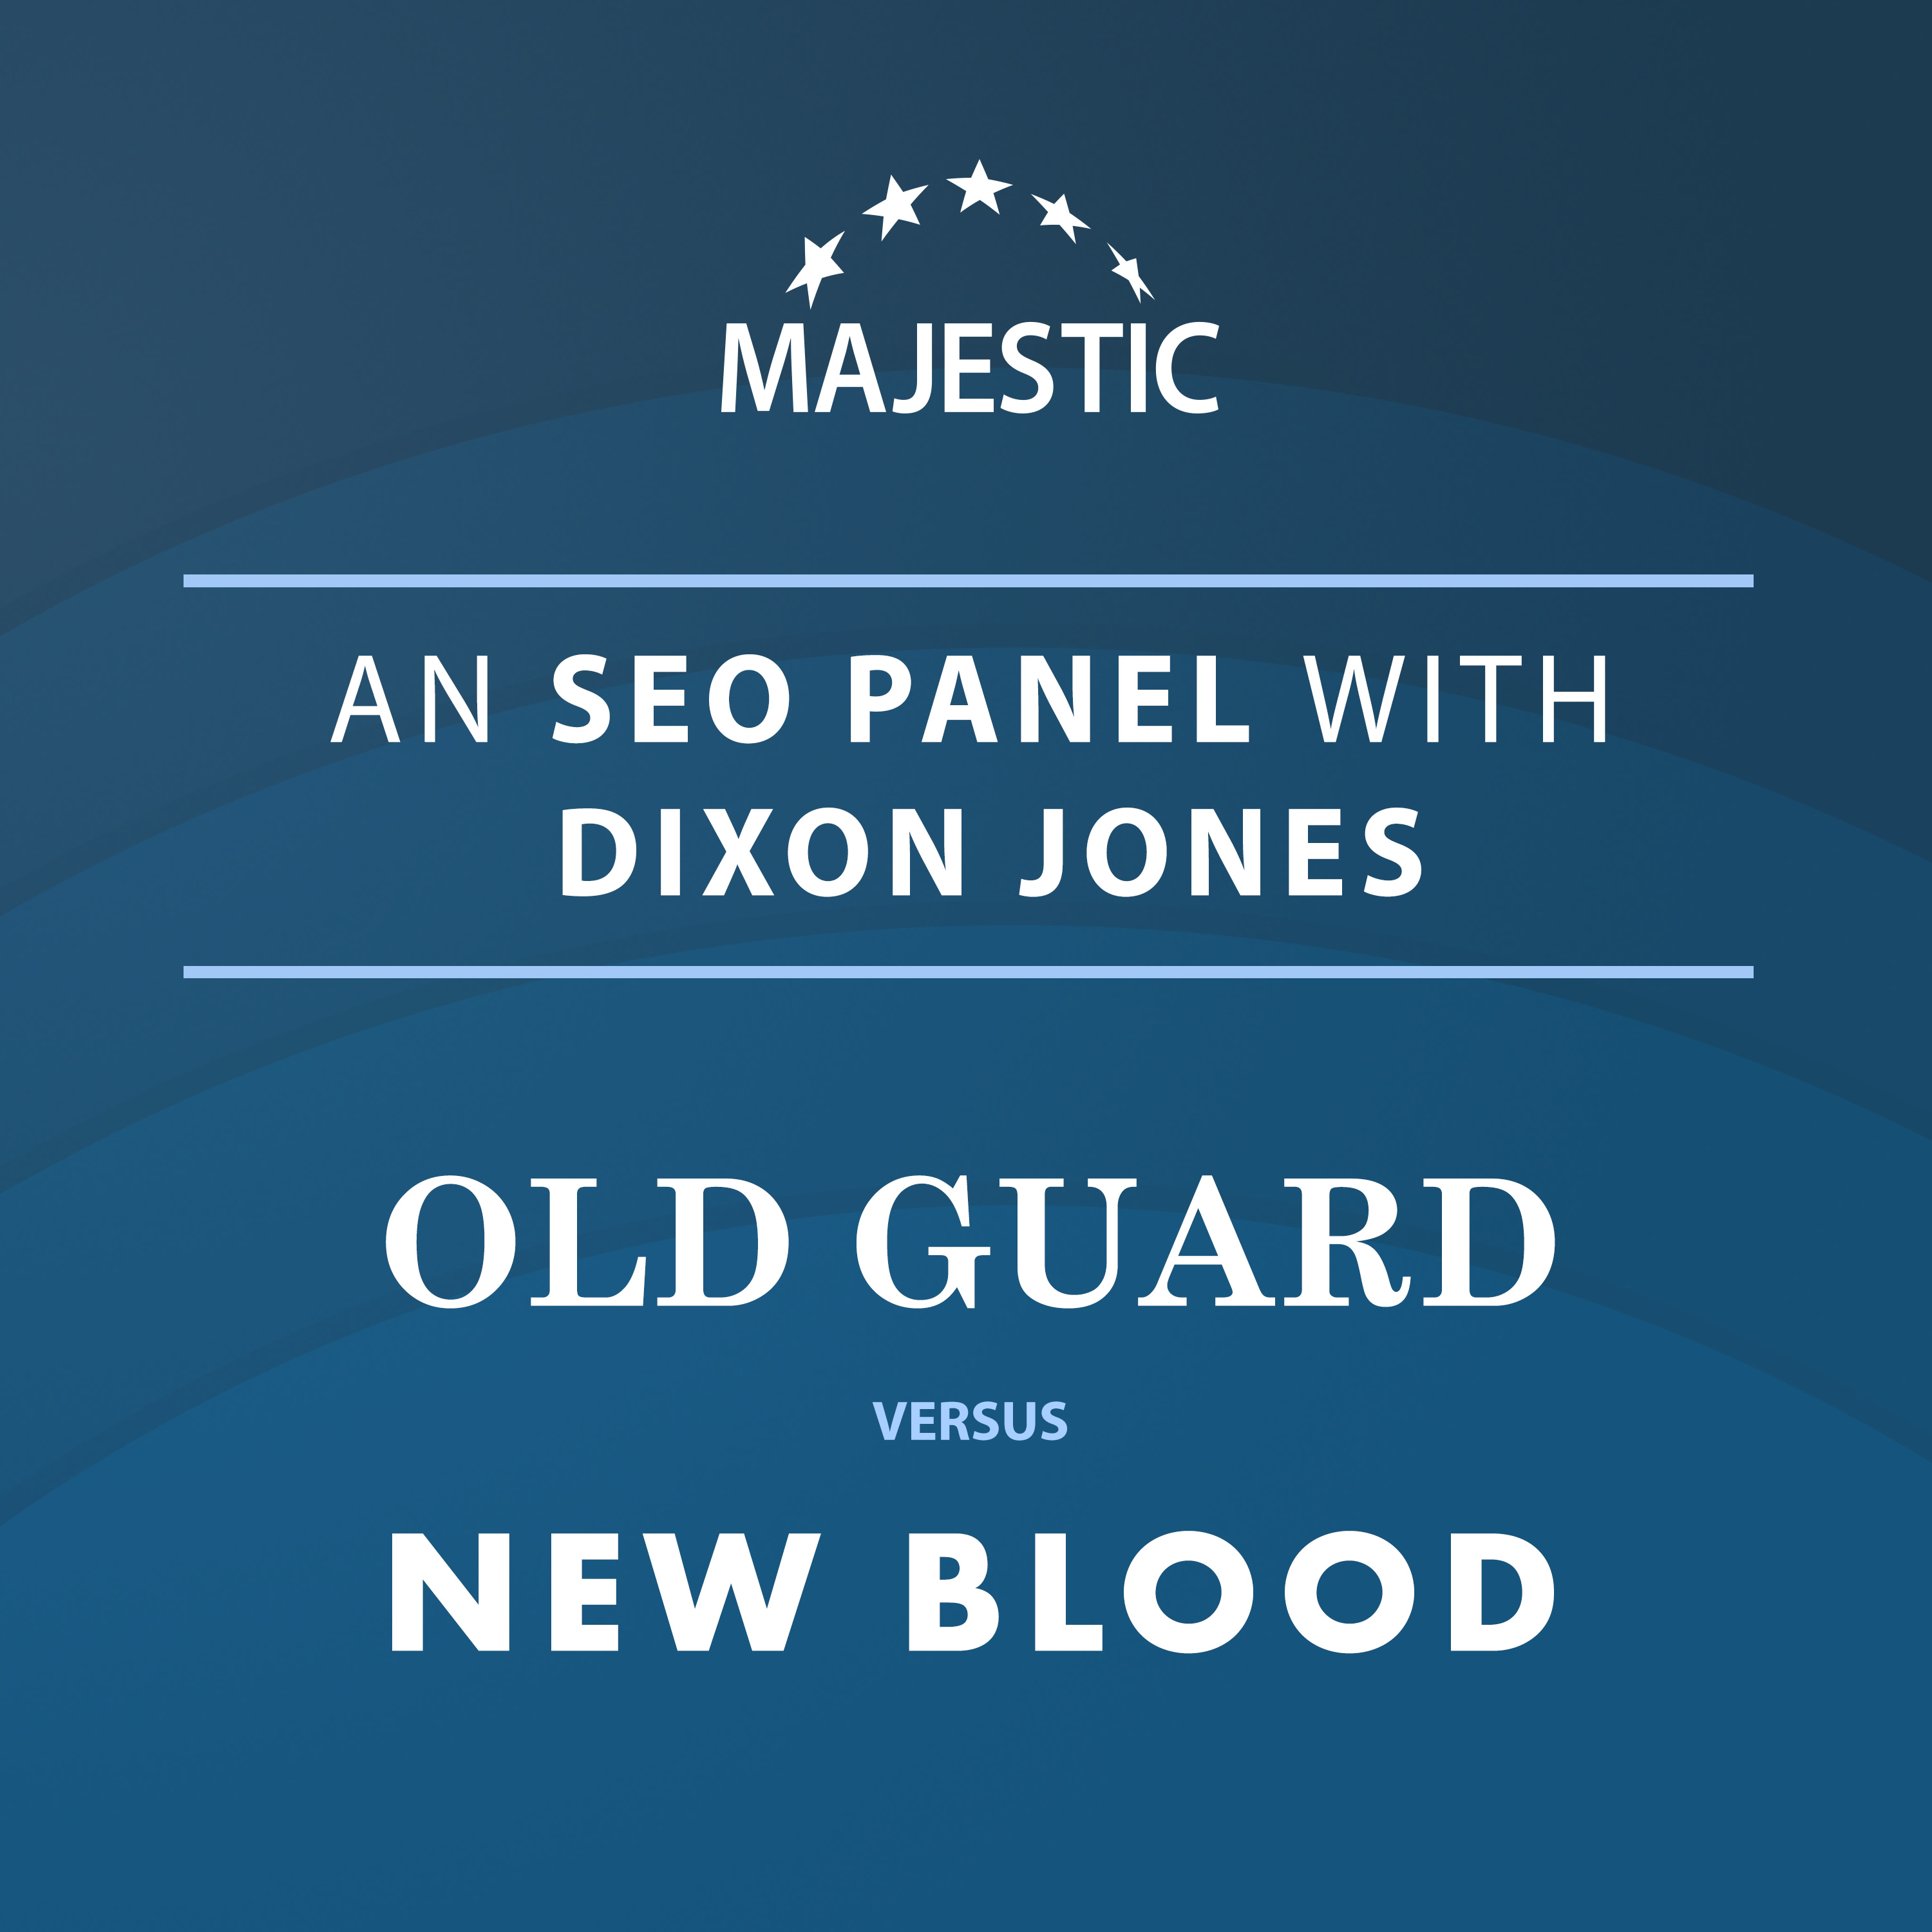 Artwork for podcast An SEO Panel with Dixon Jones: OLD GUARD versus NEW BLOOD